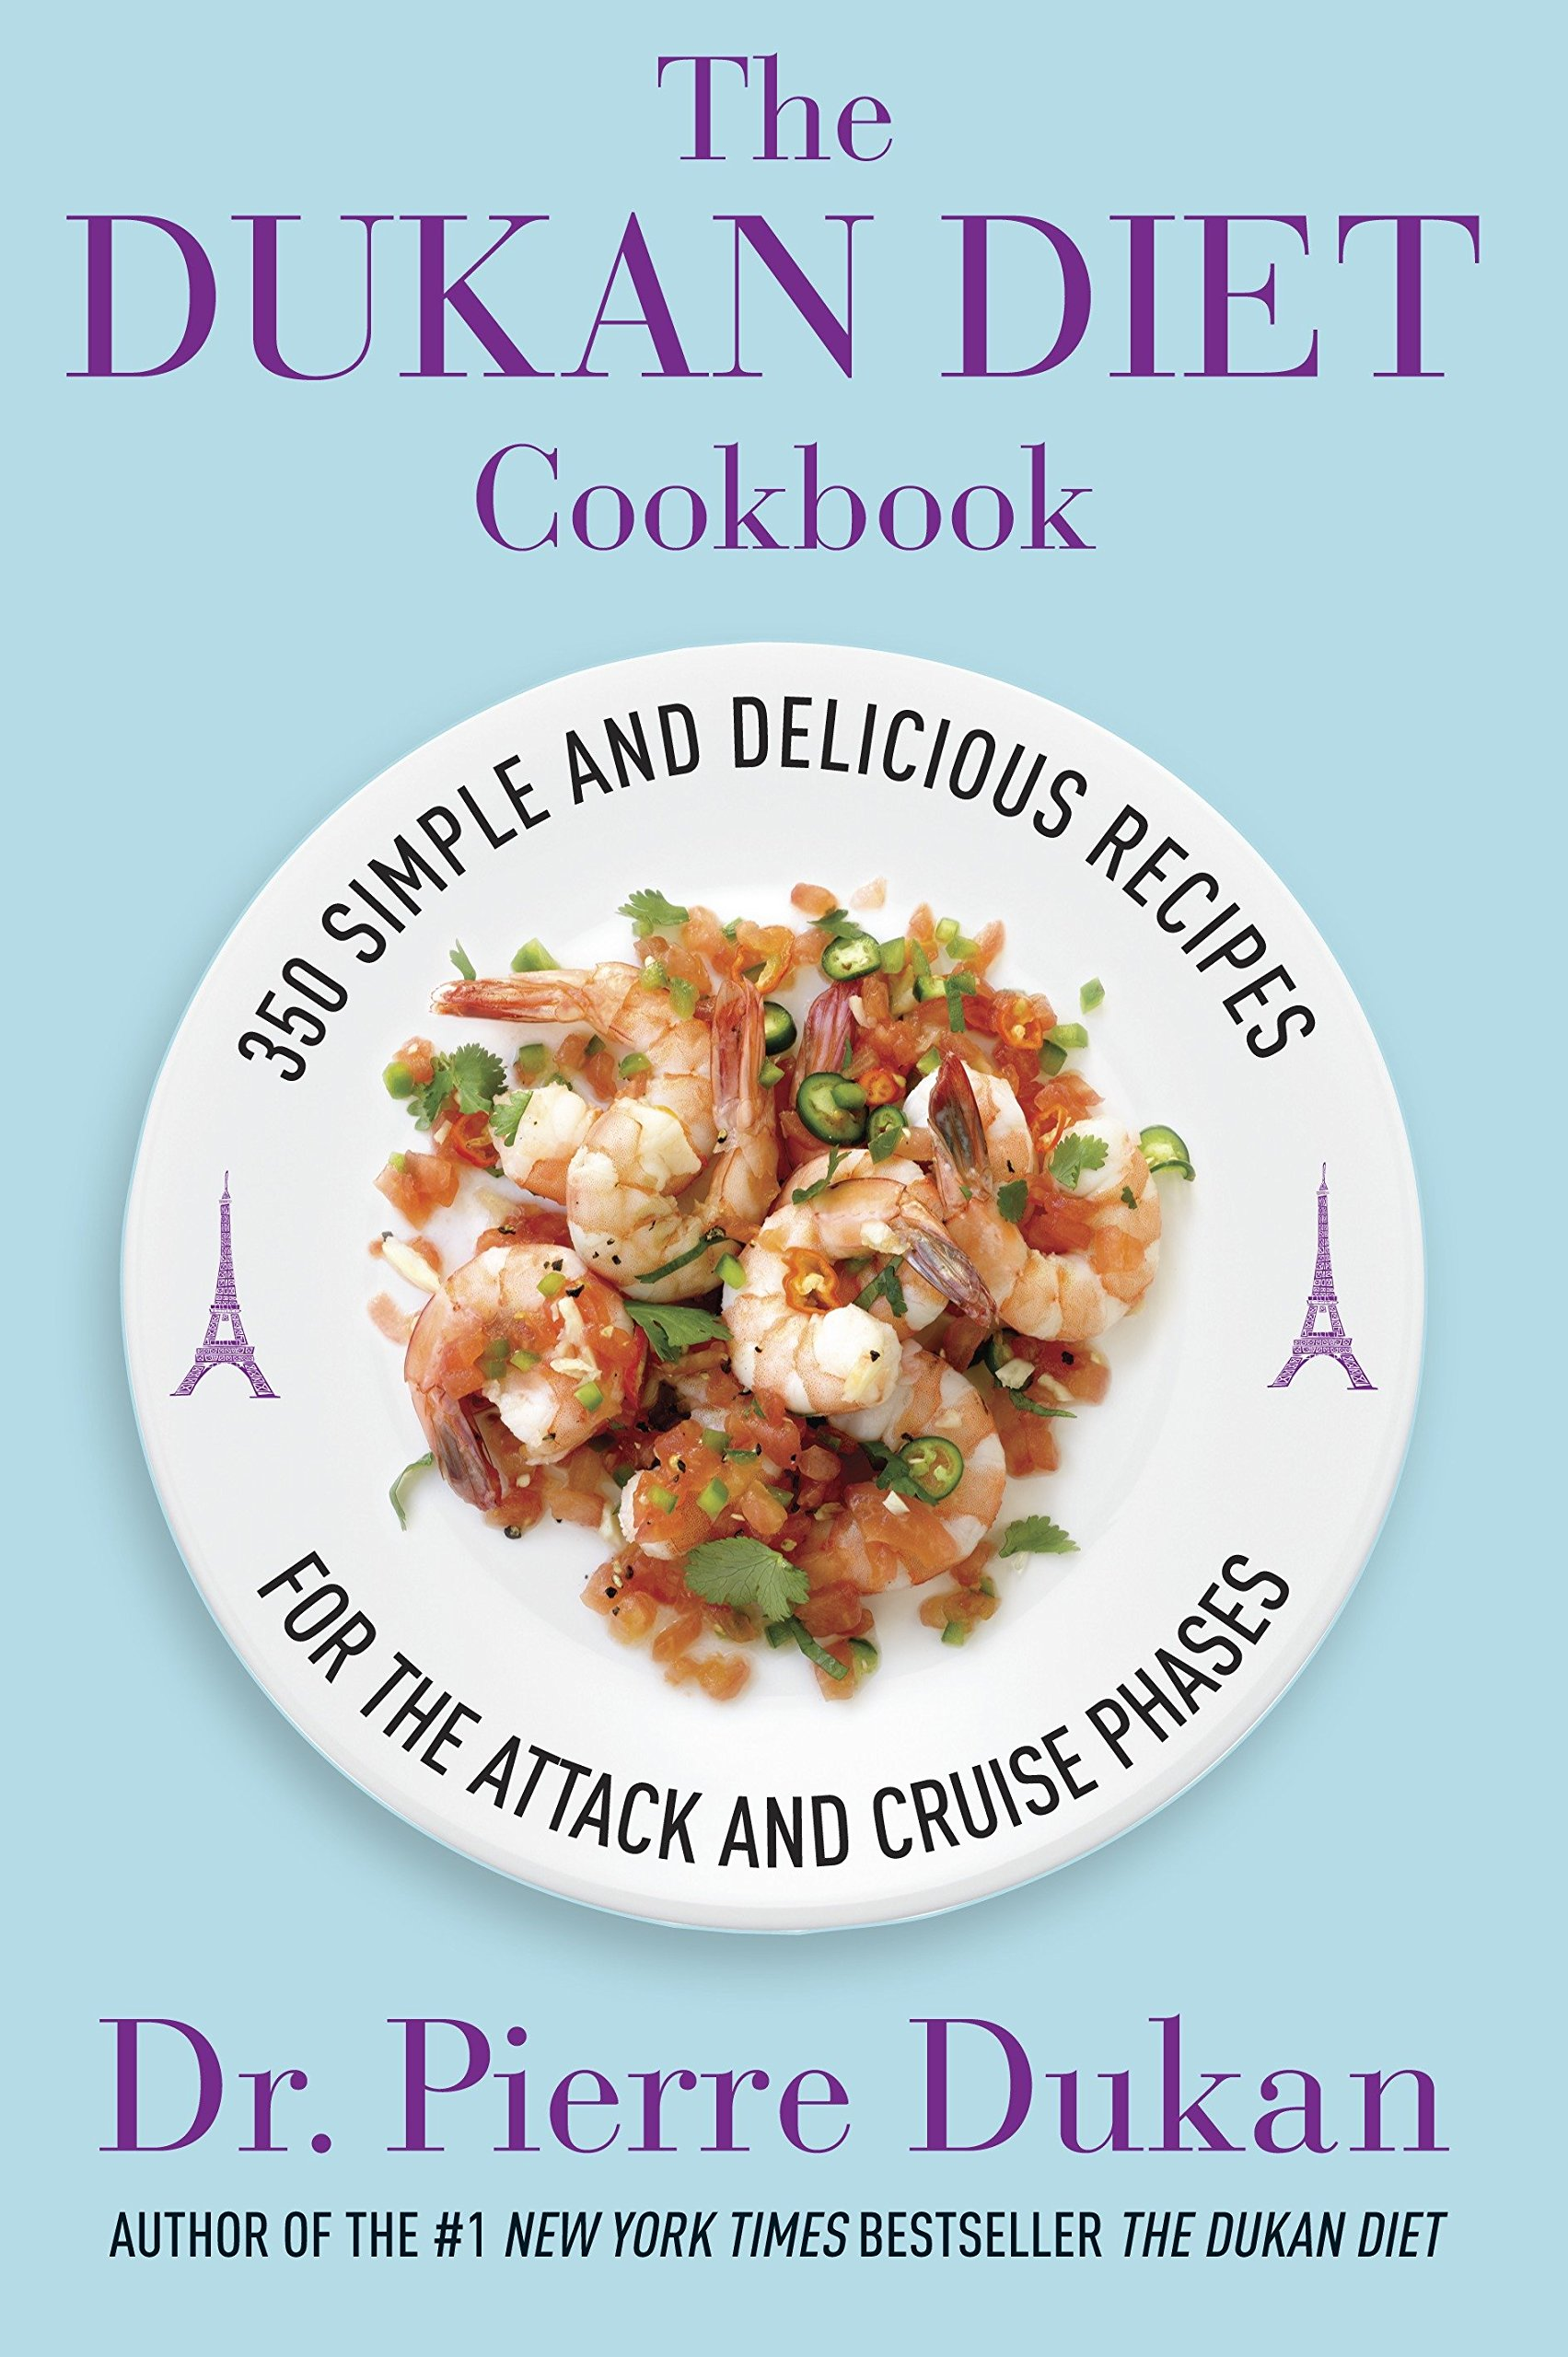 The Dukan Diet Cookbook: The Essential Companion to the Dukan Diet ebook